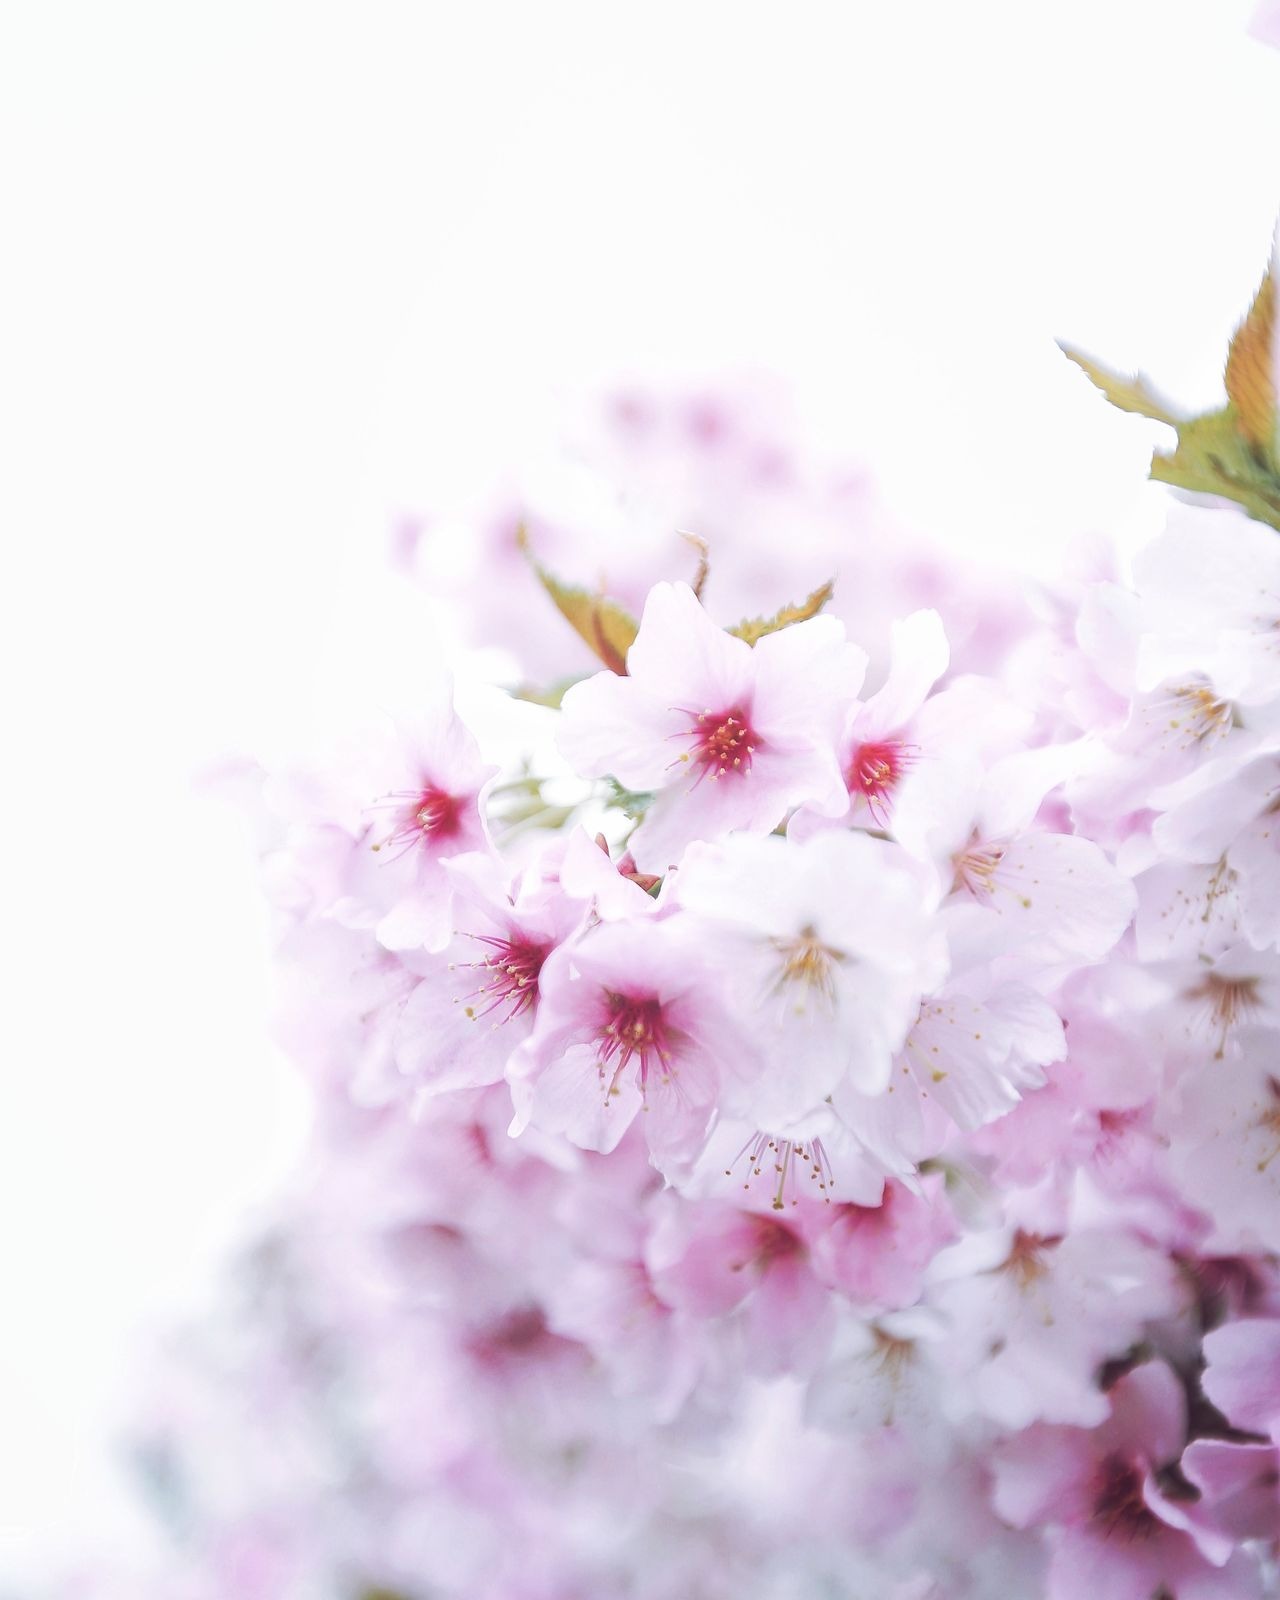 Flower Blossom Springtime Fragility Flower Head Nature Pink Color Petal Selective Focus Freshness Softness Beauty In Nature Close-up Plant Growth Pastel Colored Backgrounds Stamen No People Soft Focus Eye4photography  Beauty In Nature Nature EyeEm Best Shots